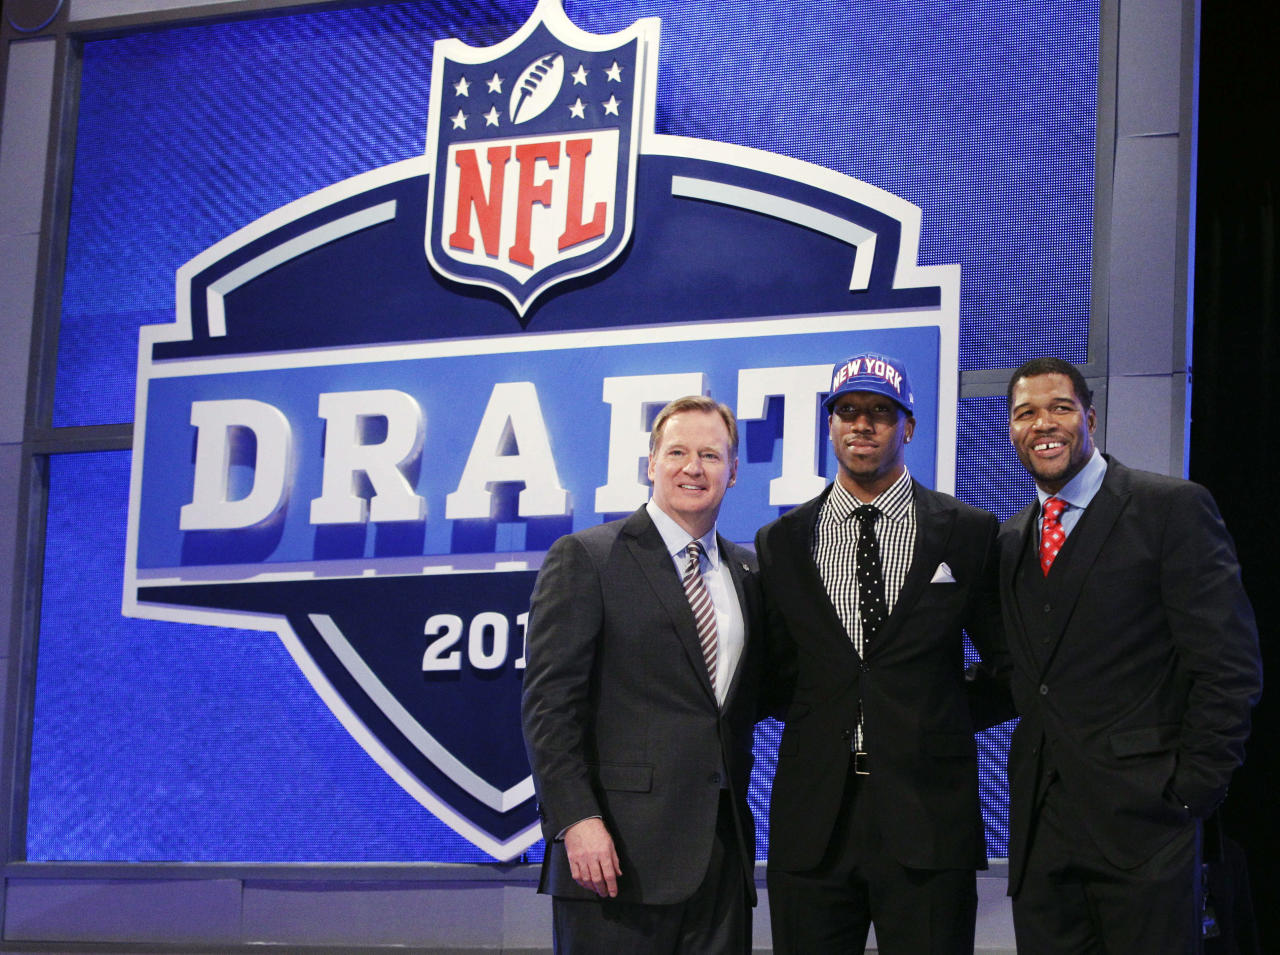 Louisiana State wide receiver Rueben Randle poses for photographs with NFL Commissioner Roger Goodell, left, and Michael Strahan, right, after being selected 63rd overall by the New York Giants in the second round of the NFL football draft at Radio City Music Hall, Friday, April 27, 2012, in New York. (AP Photo/Frank Franklin II)